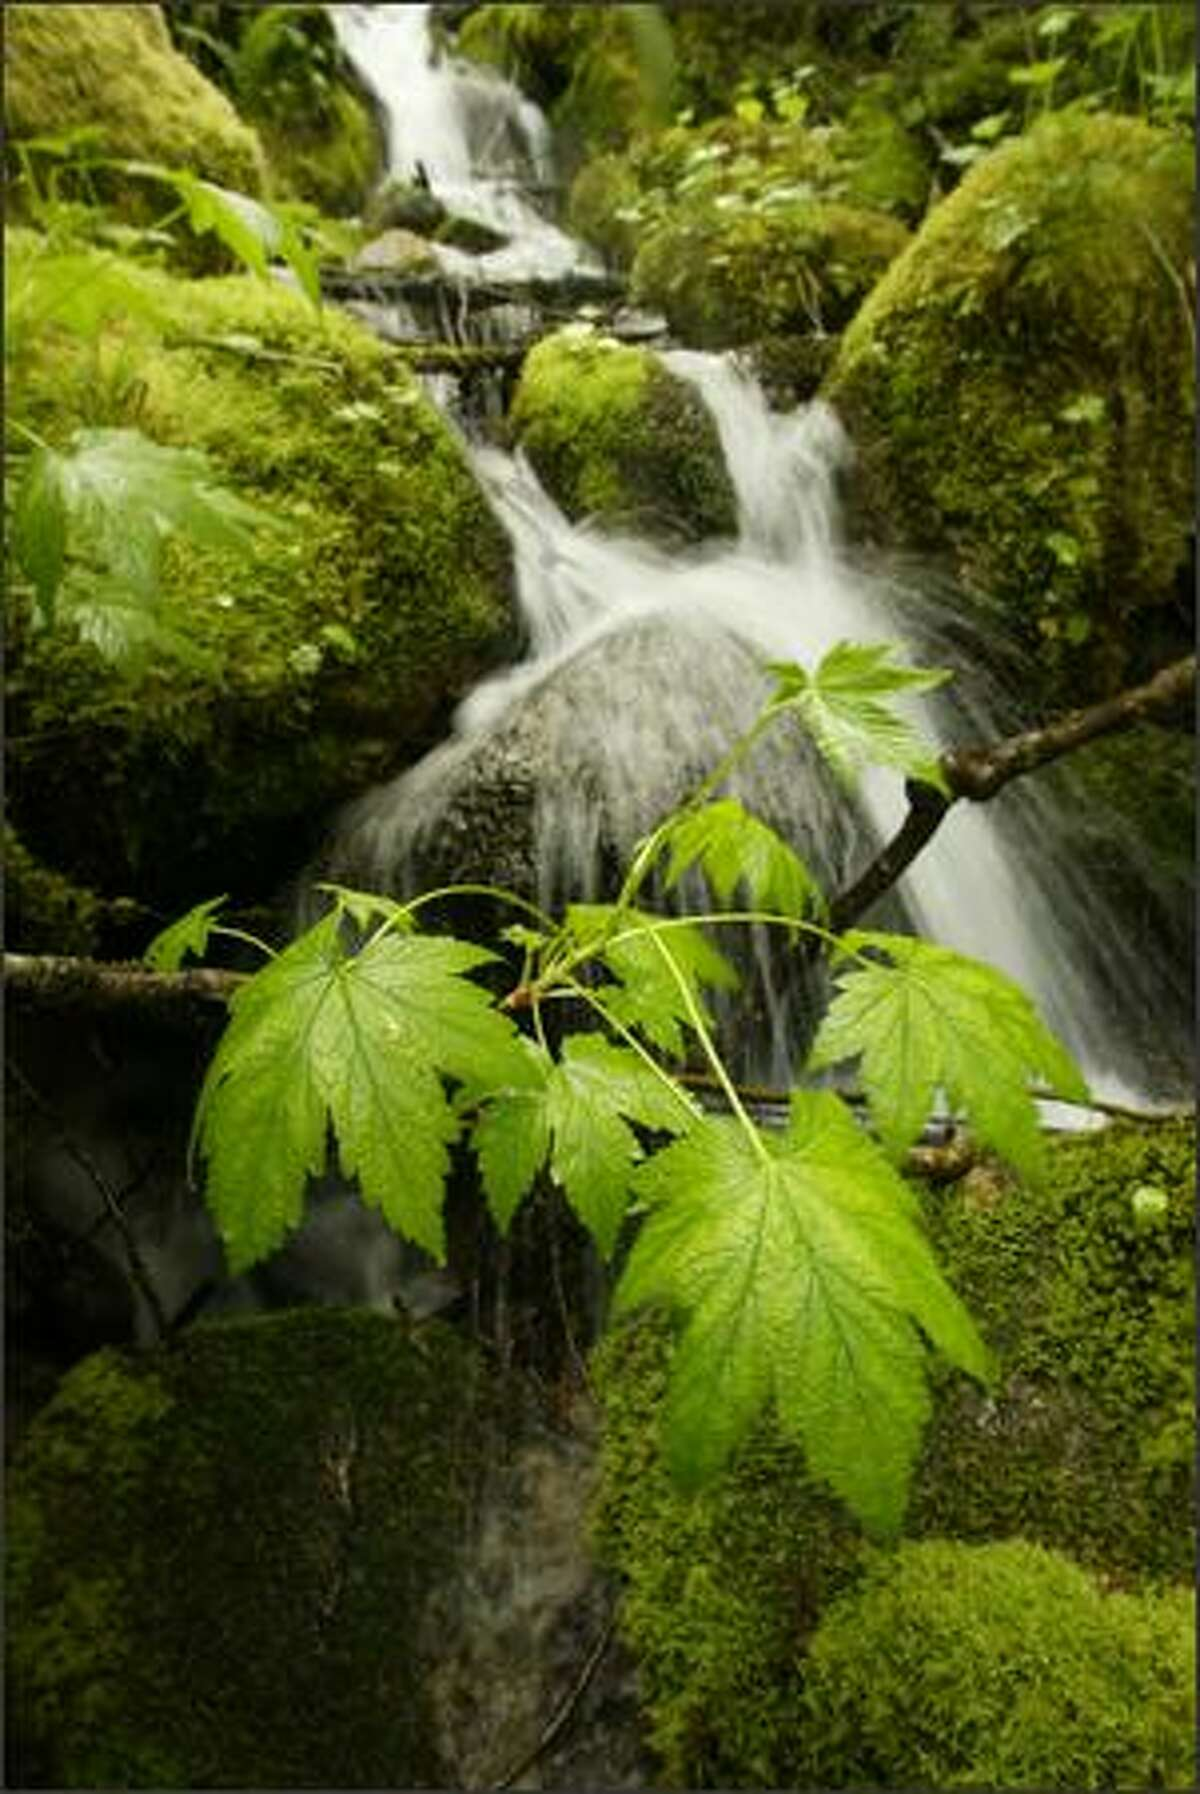 A snow melt creek flows into the Skagit River, over moss covered rocks and under wet leaves, in Washington state's North Cascades. May 18, 2008.